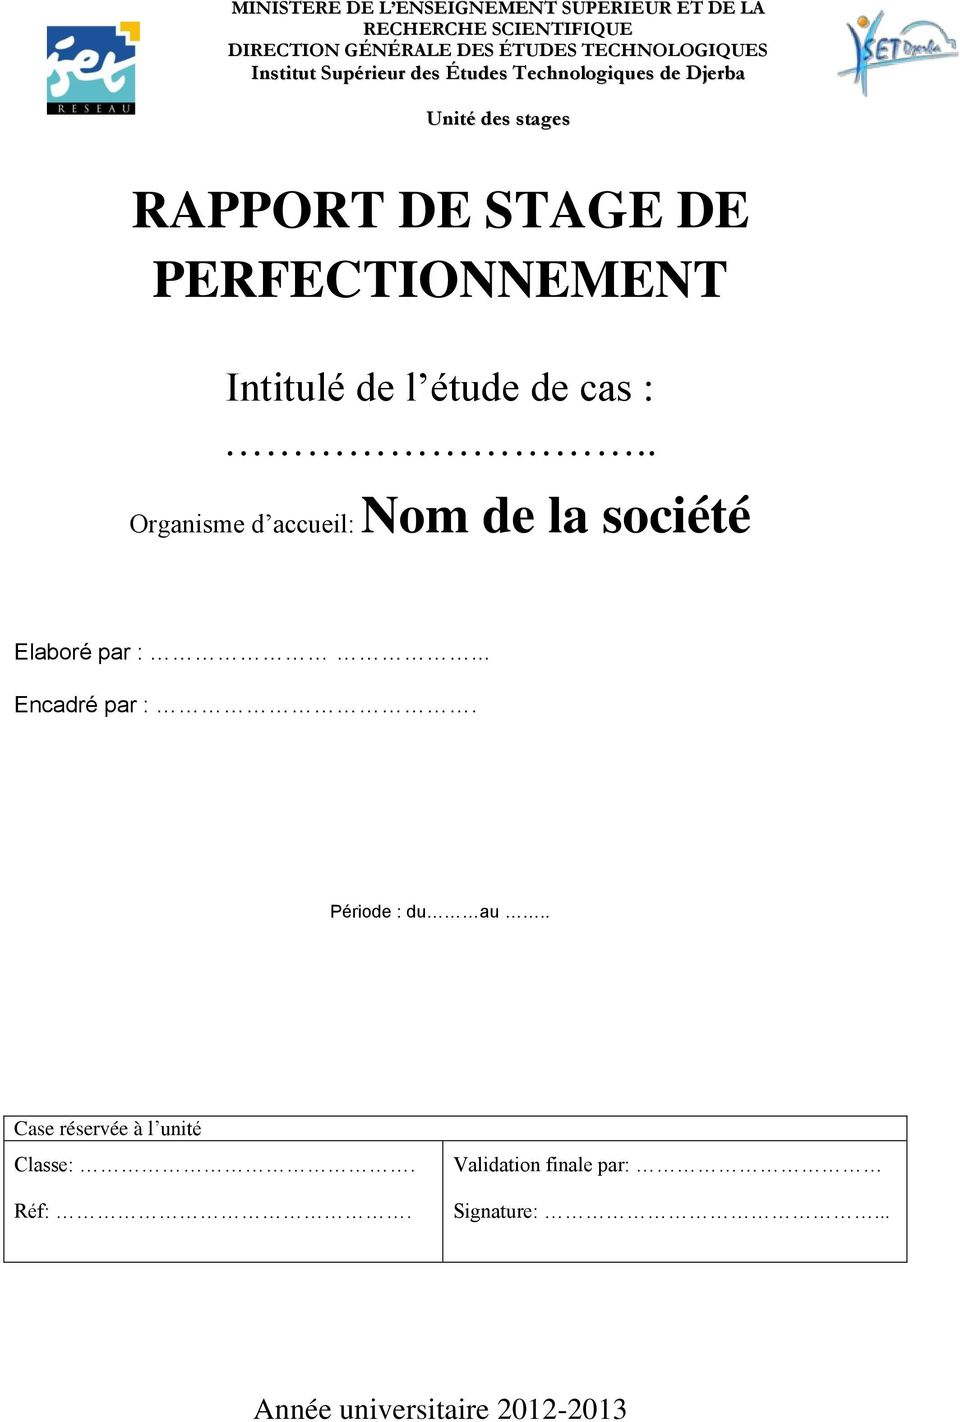 Modele Du Rapport Stage Perfectionnement Pdf